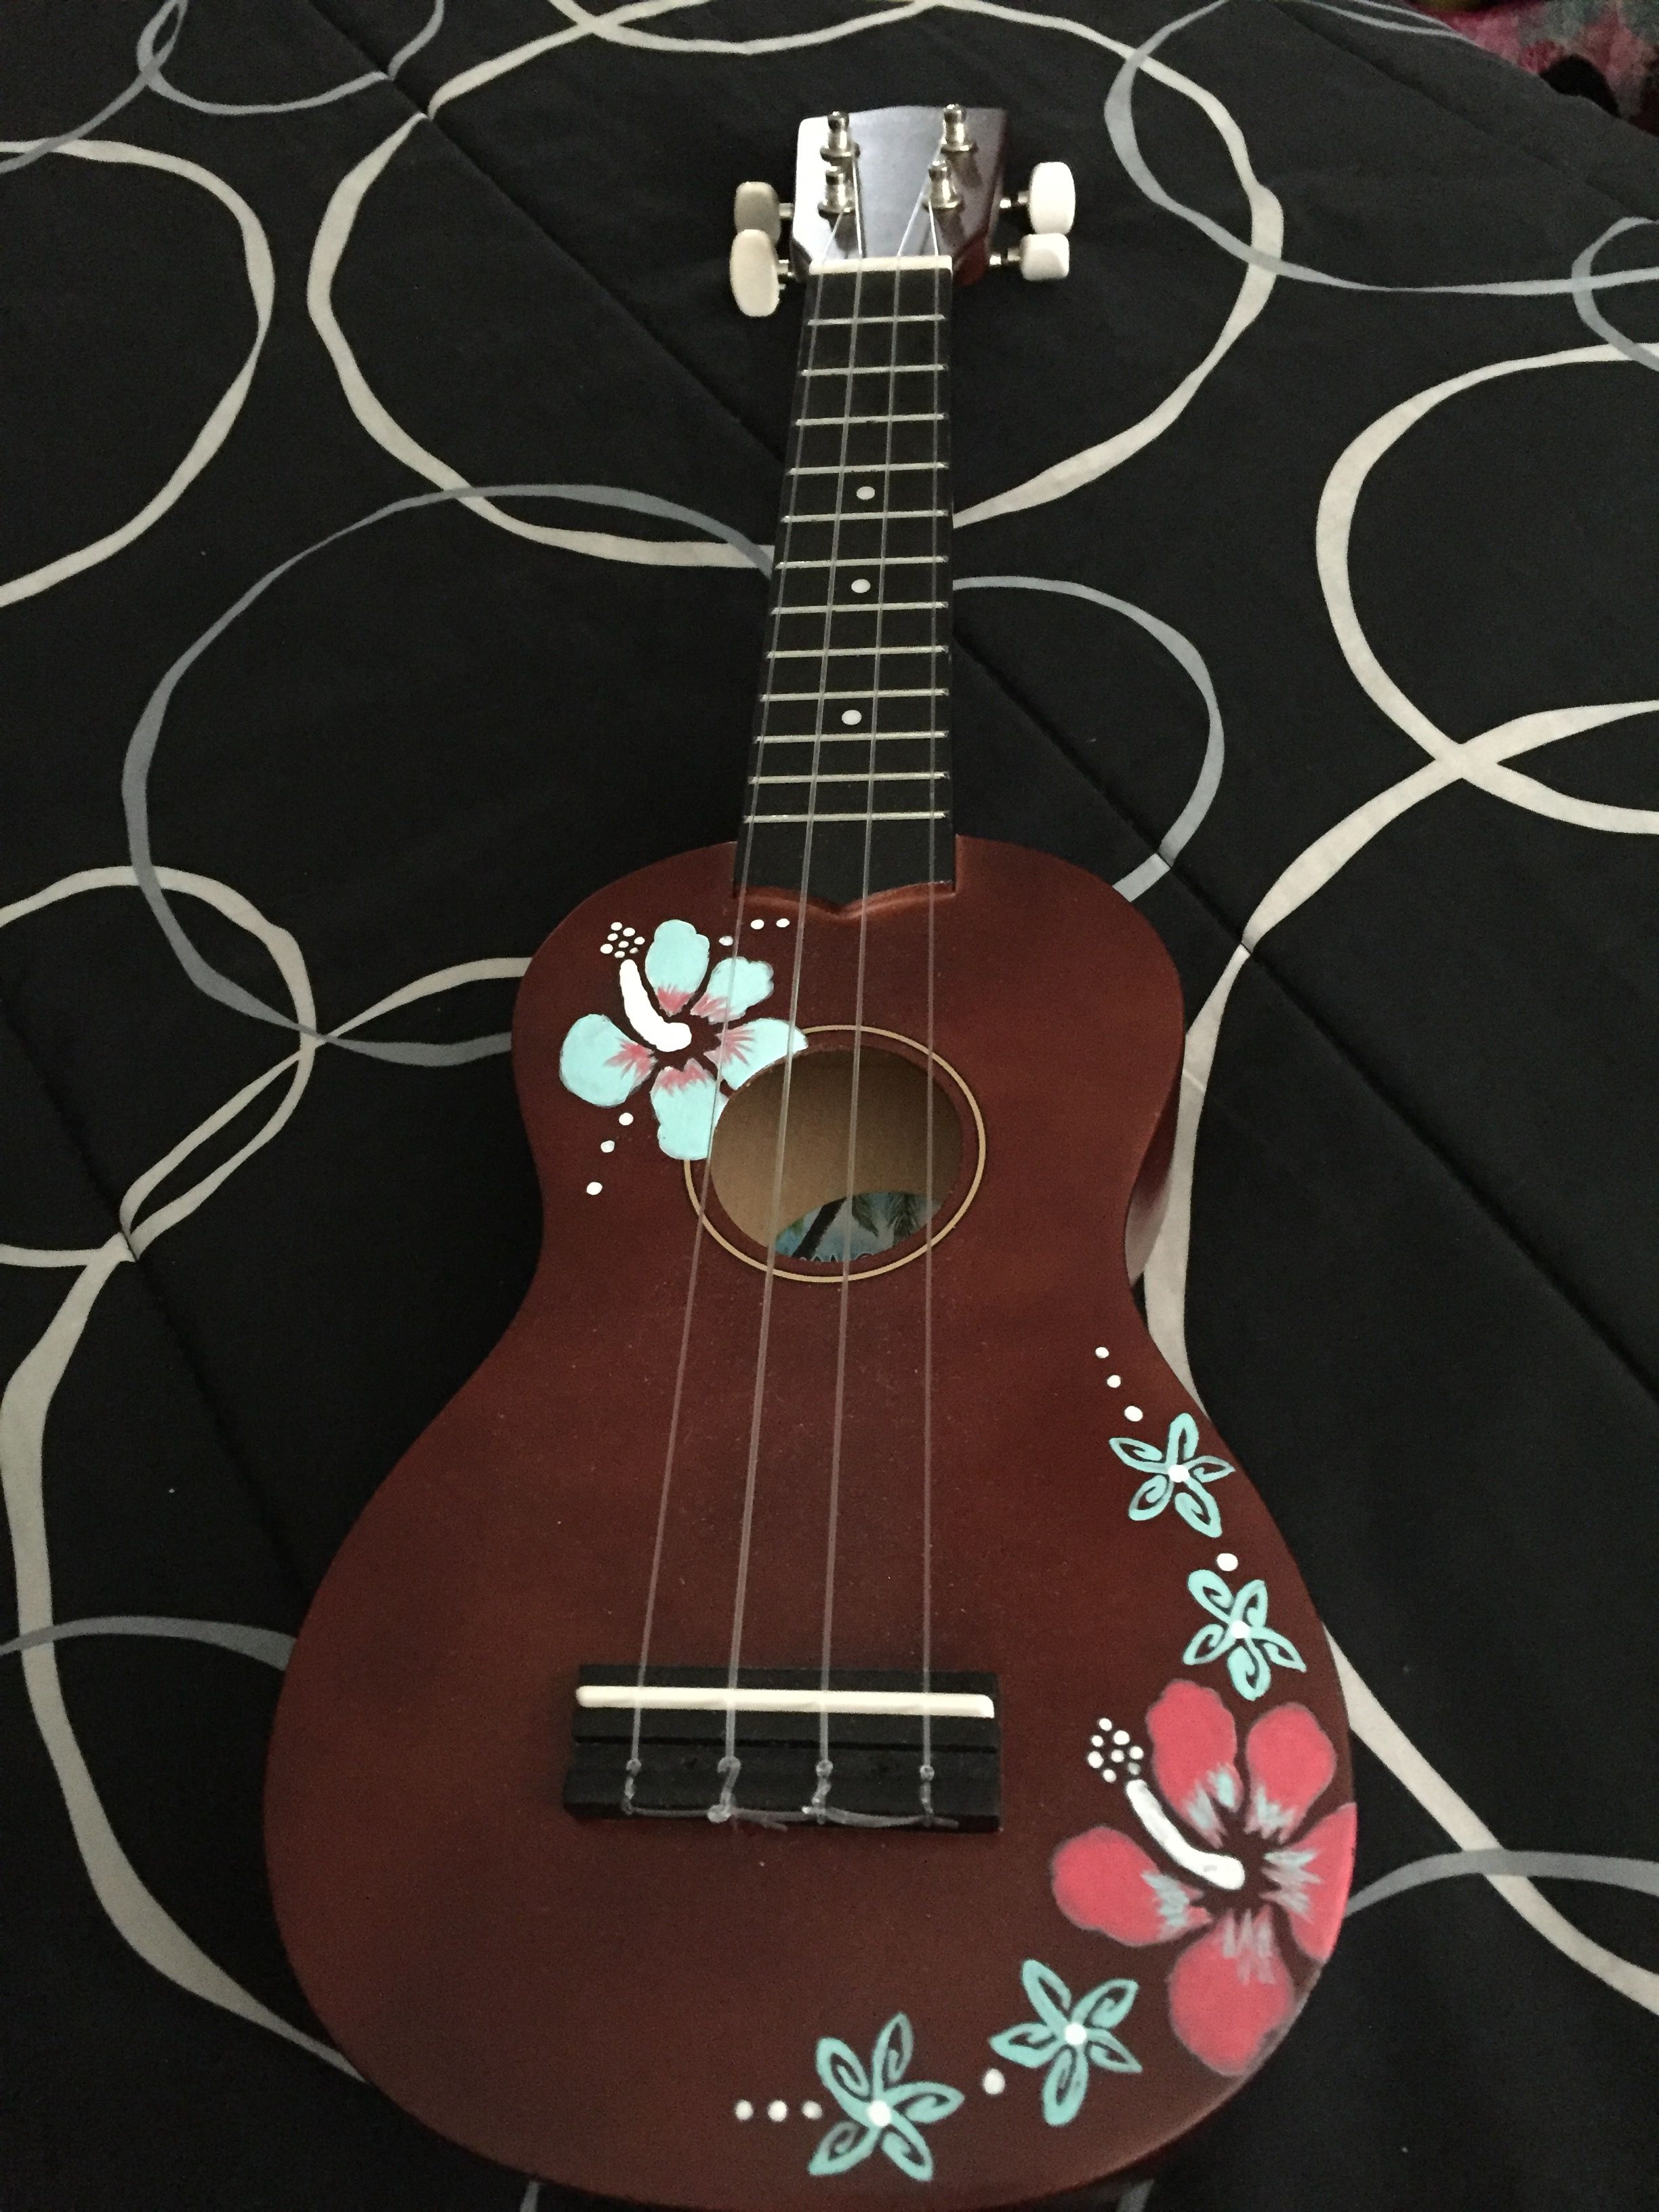 Guitarras Decoradas I Really Wanna Paint On A Ukulele Ukulele Pinterest